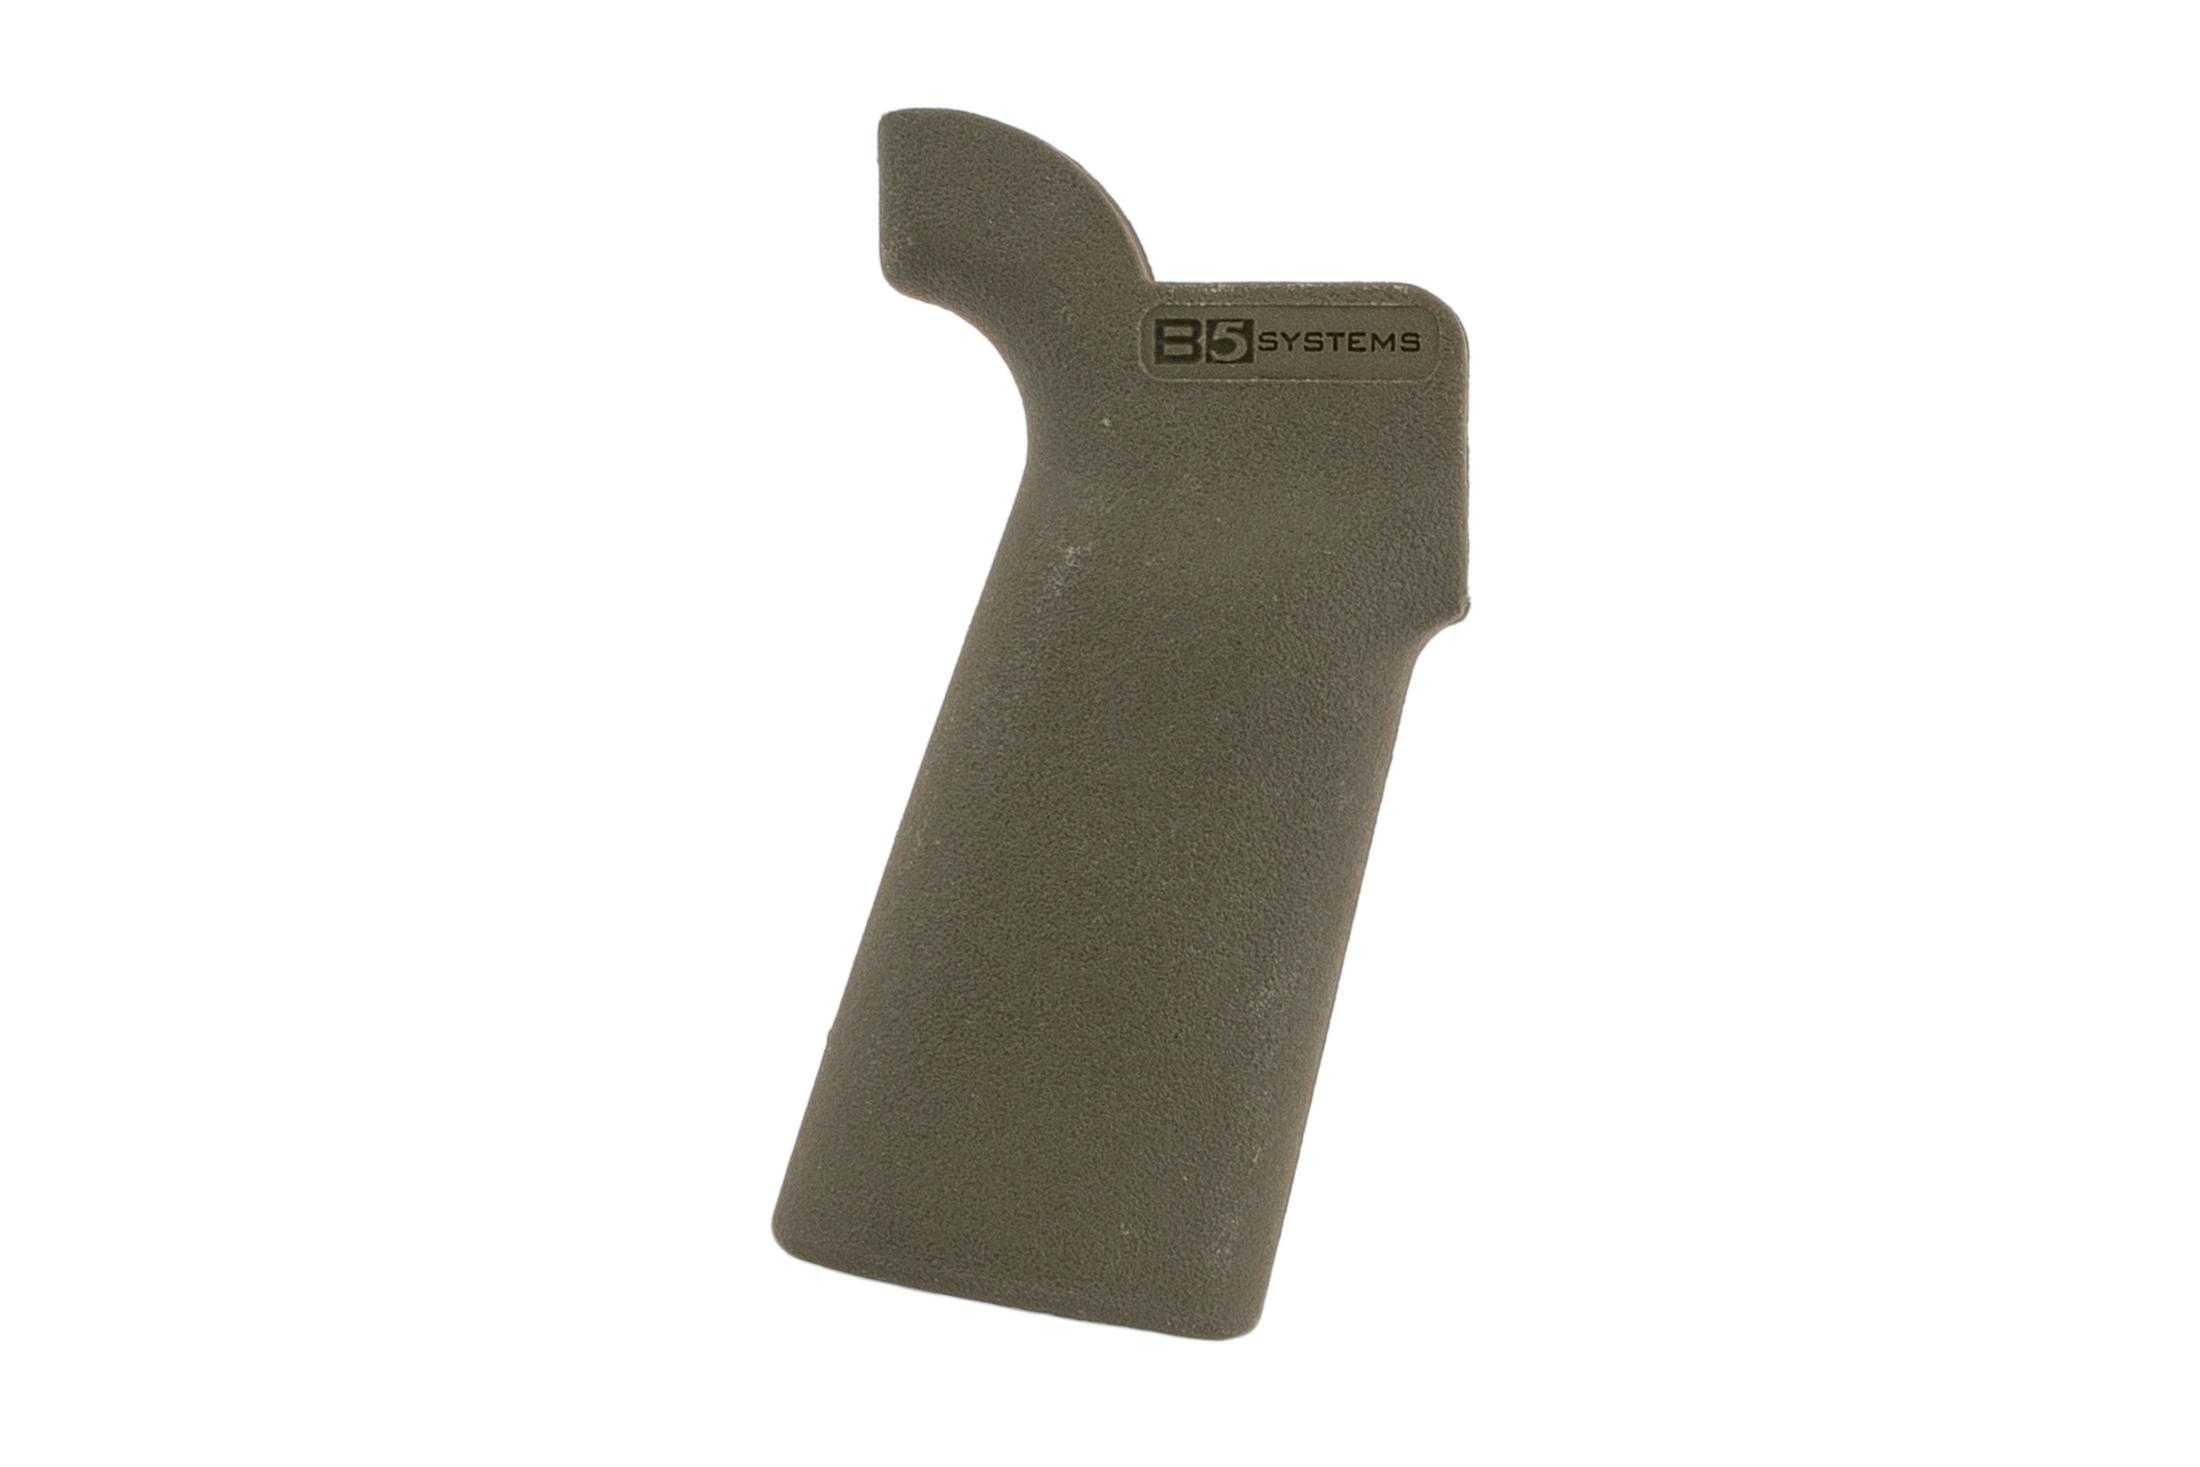 The B5 Systems Type 23 Pistol Grip comes in olive drab green